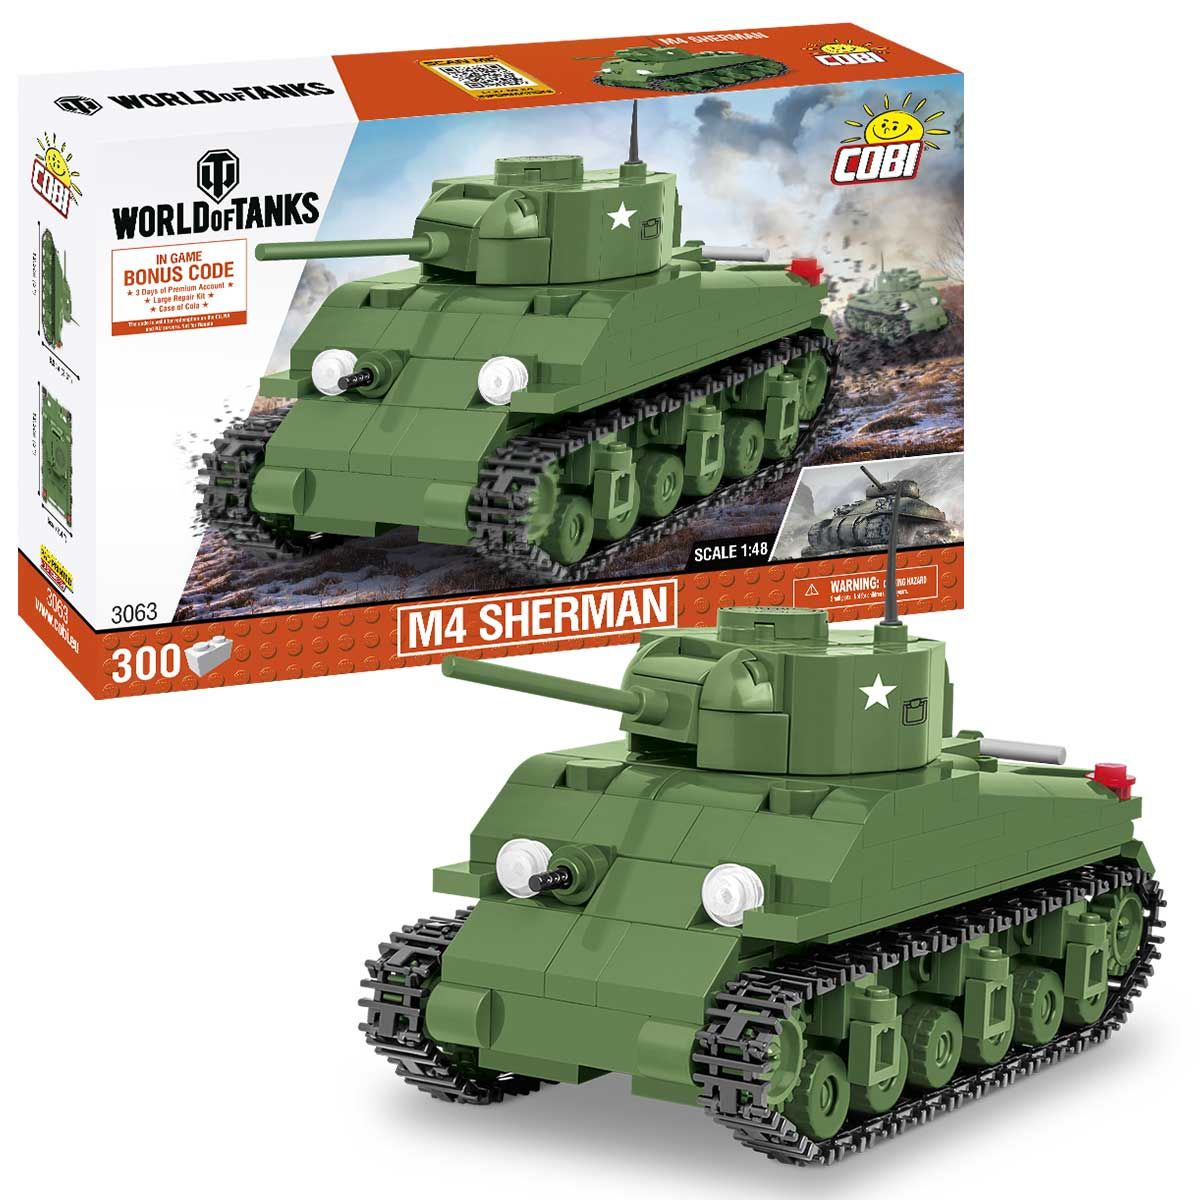 M4 Sherman (3063) Cobi 'World of Tanks' 1:48 scale